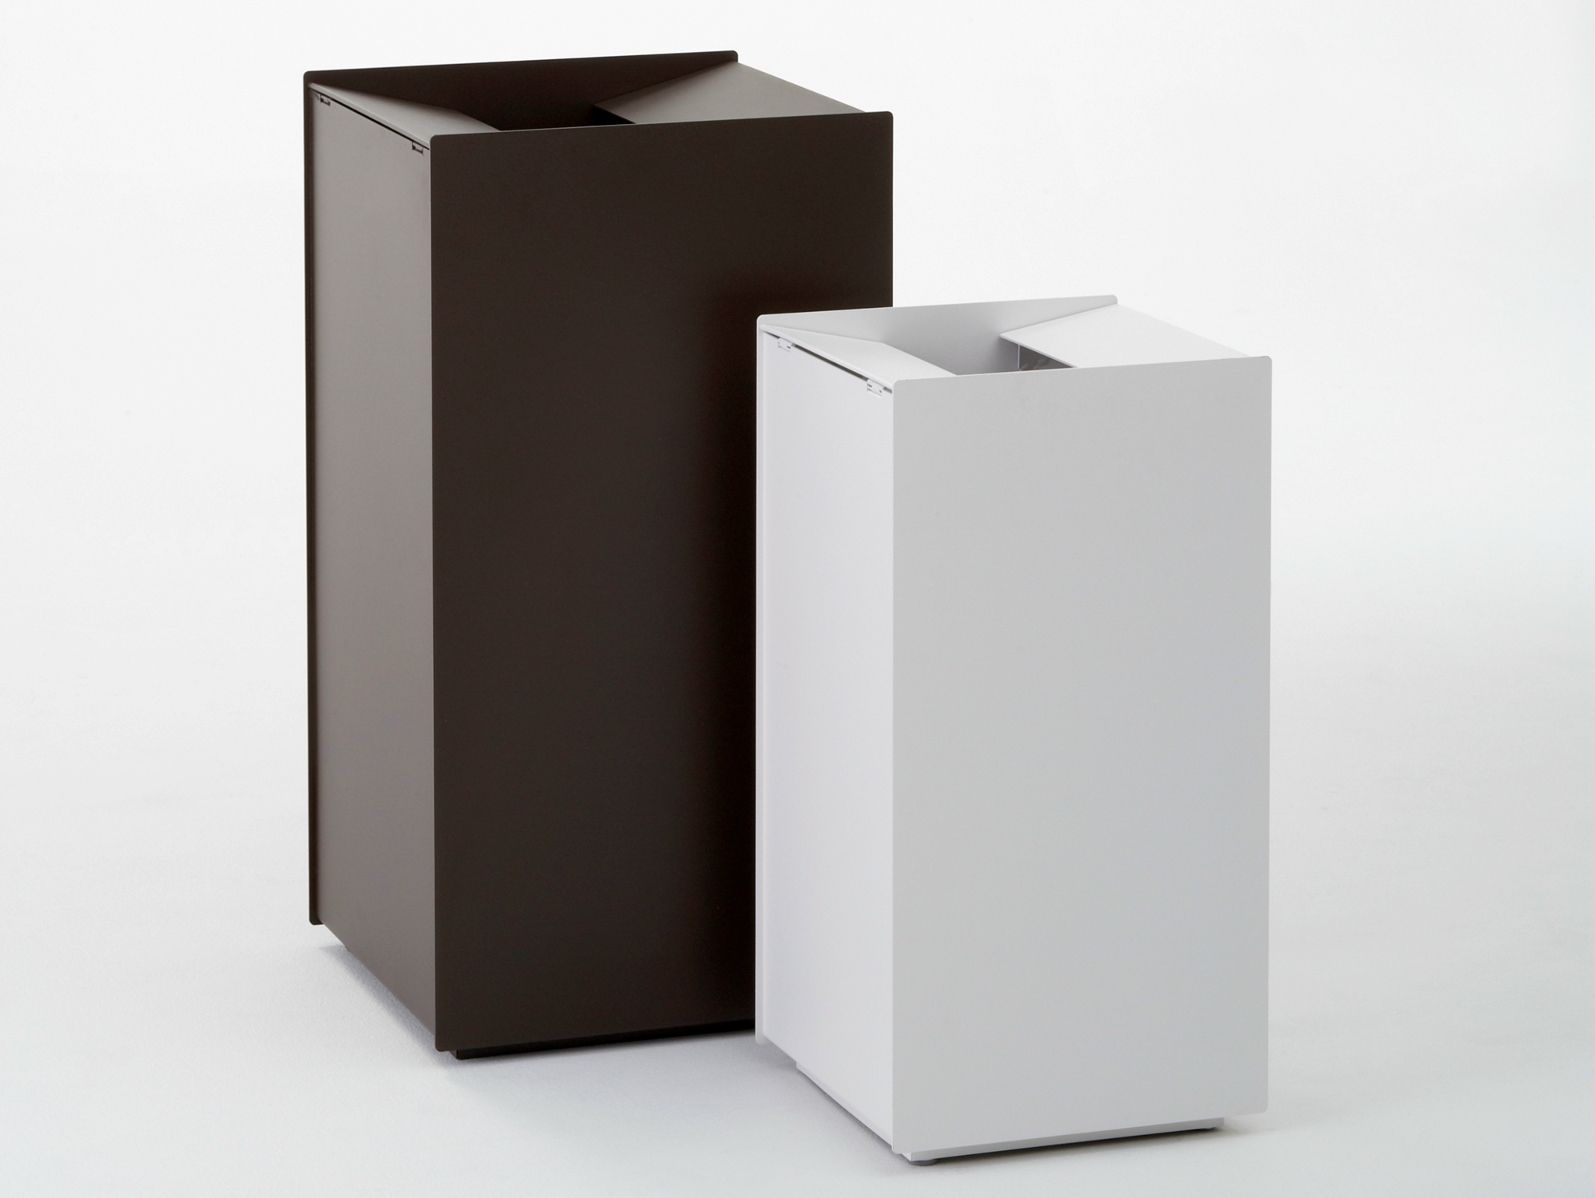 Exceptional Poubelle Tri Selectif Design #11: Download The Catalogue And Request Prices Of Foga By Nola Industrier, Plate  Waste Bin For Waste Sorting Design Eva Herdin. Poubelles ...